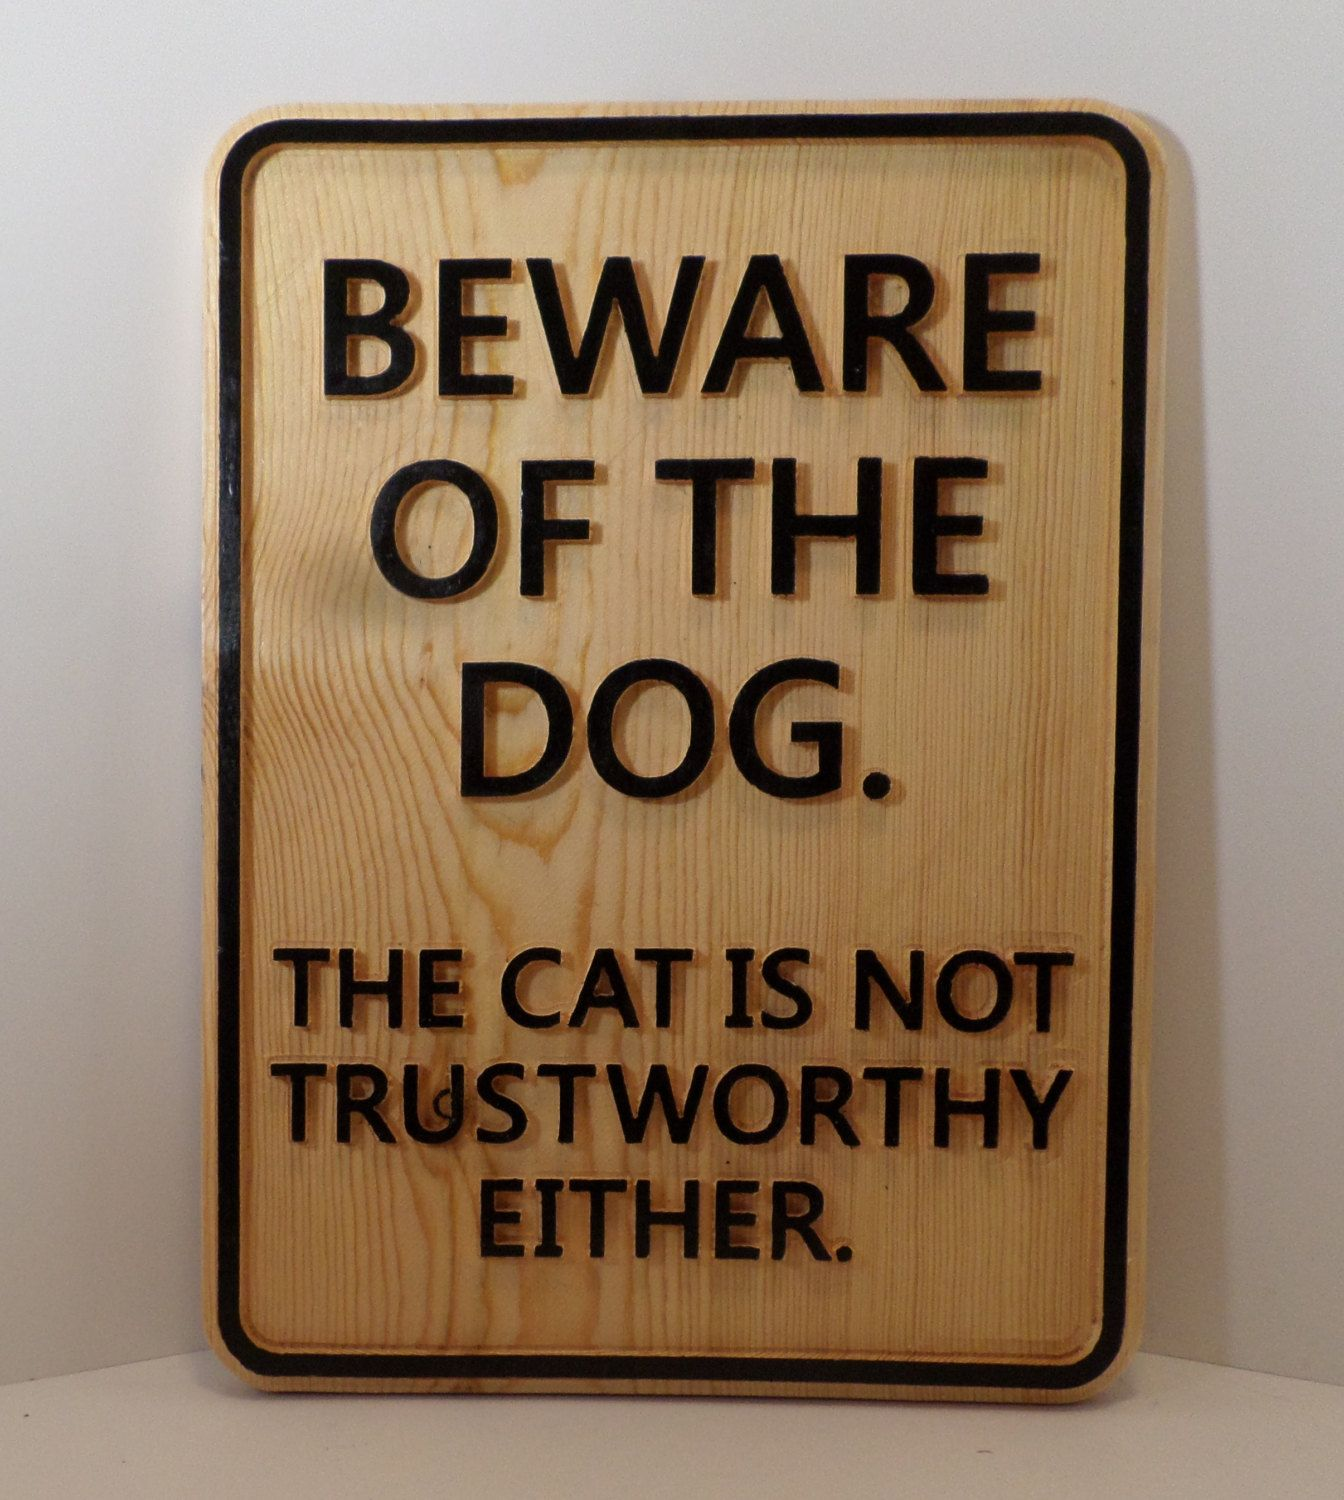 Beware Of The Dog Cat Not Trustworthy Metal Sign Hanging Stocking Filler Paws